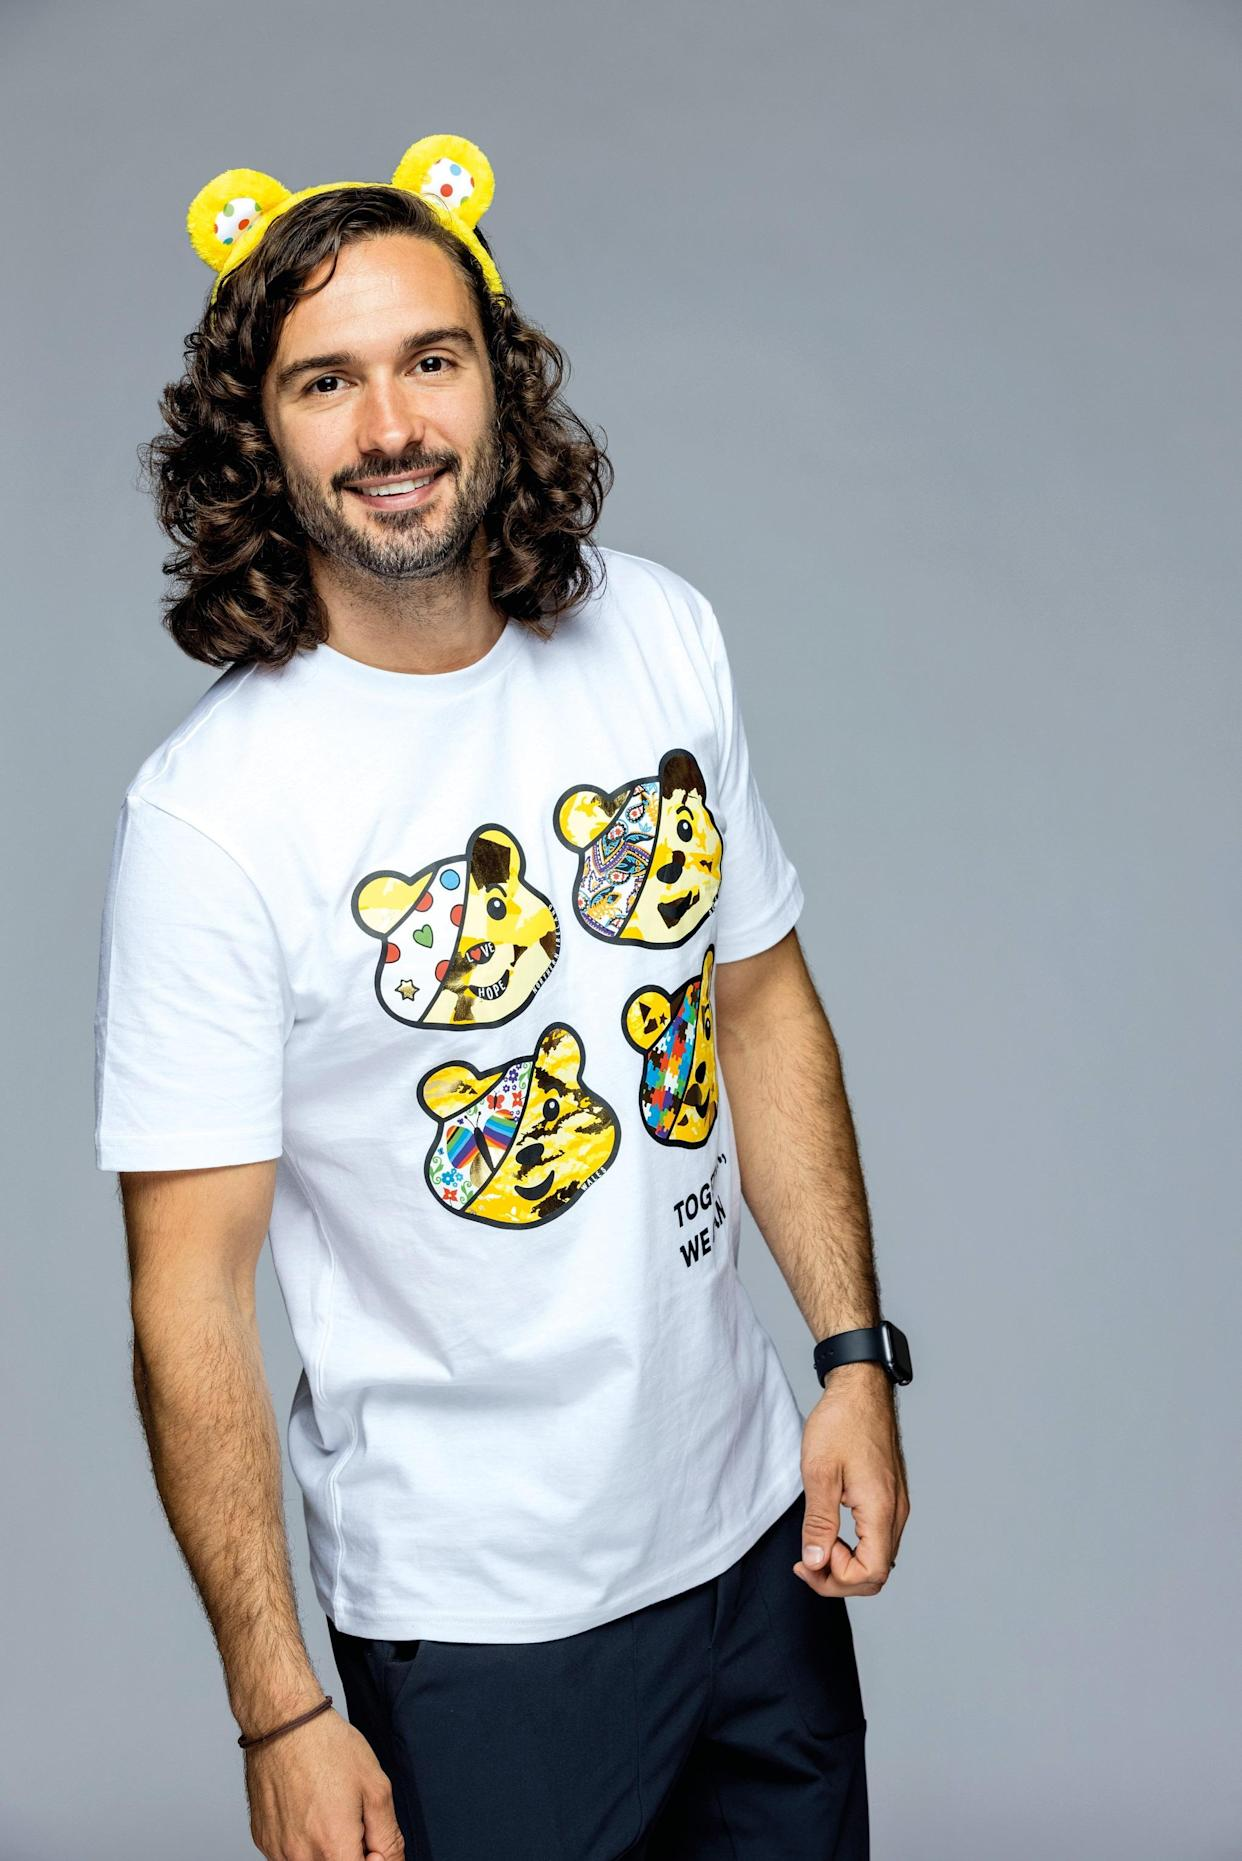 Joe Wicks MBE supports BBC Children in Need Together We Can campaign